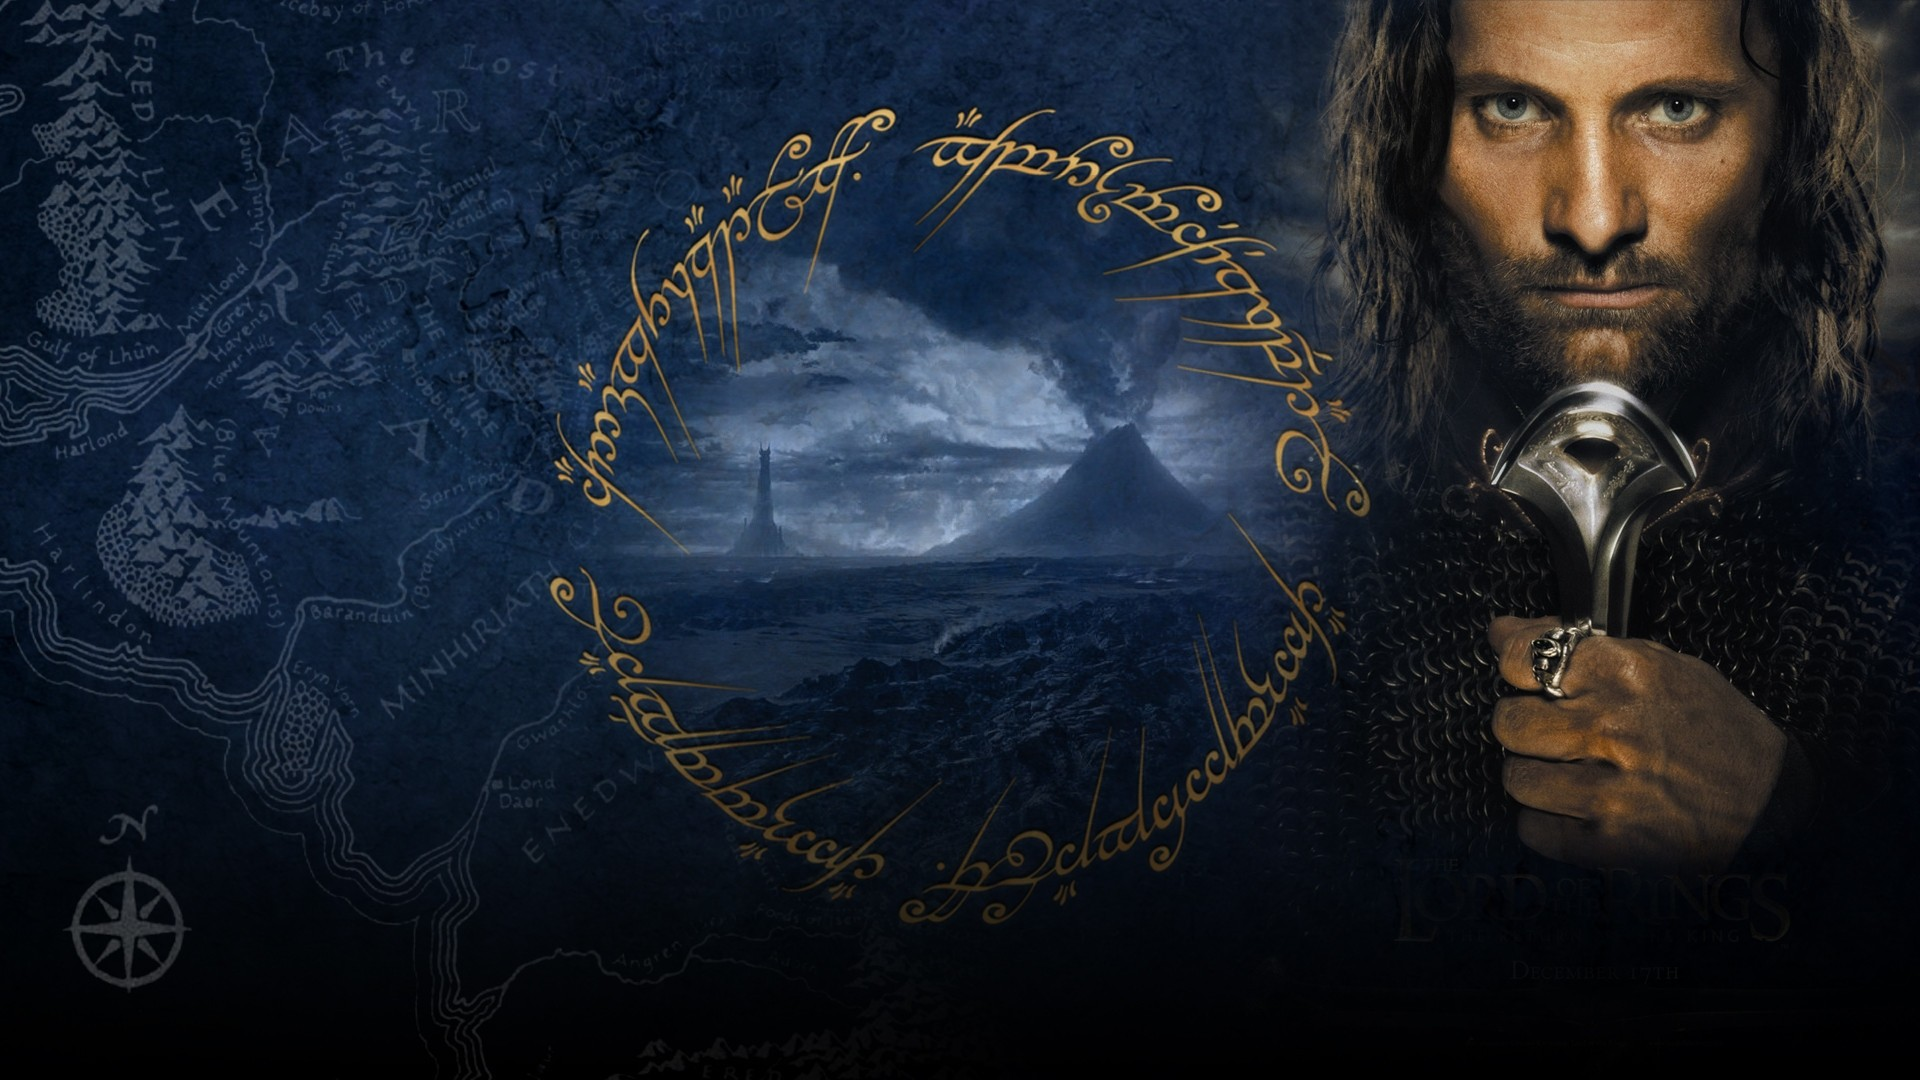 Res: 1920x1080, The Lord of the Rings: The Return of the King Wallpaper, Wallpaper from the